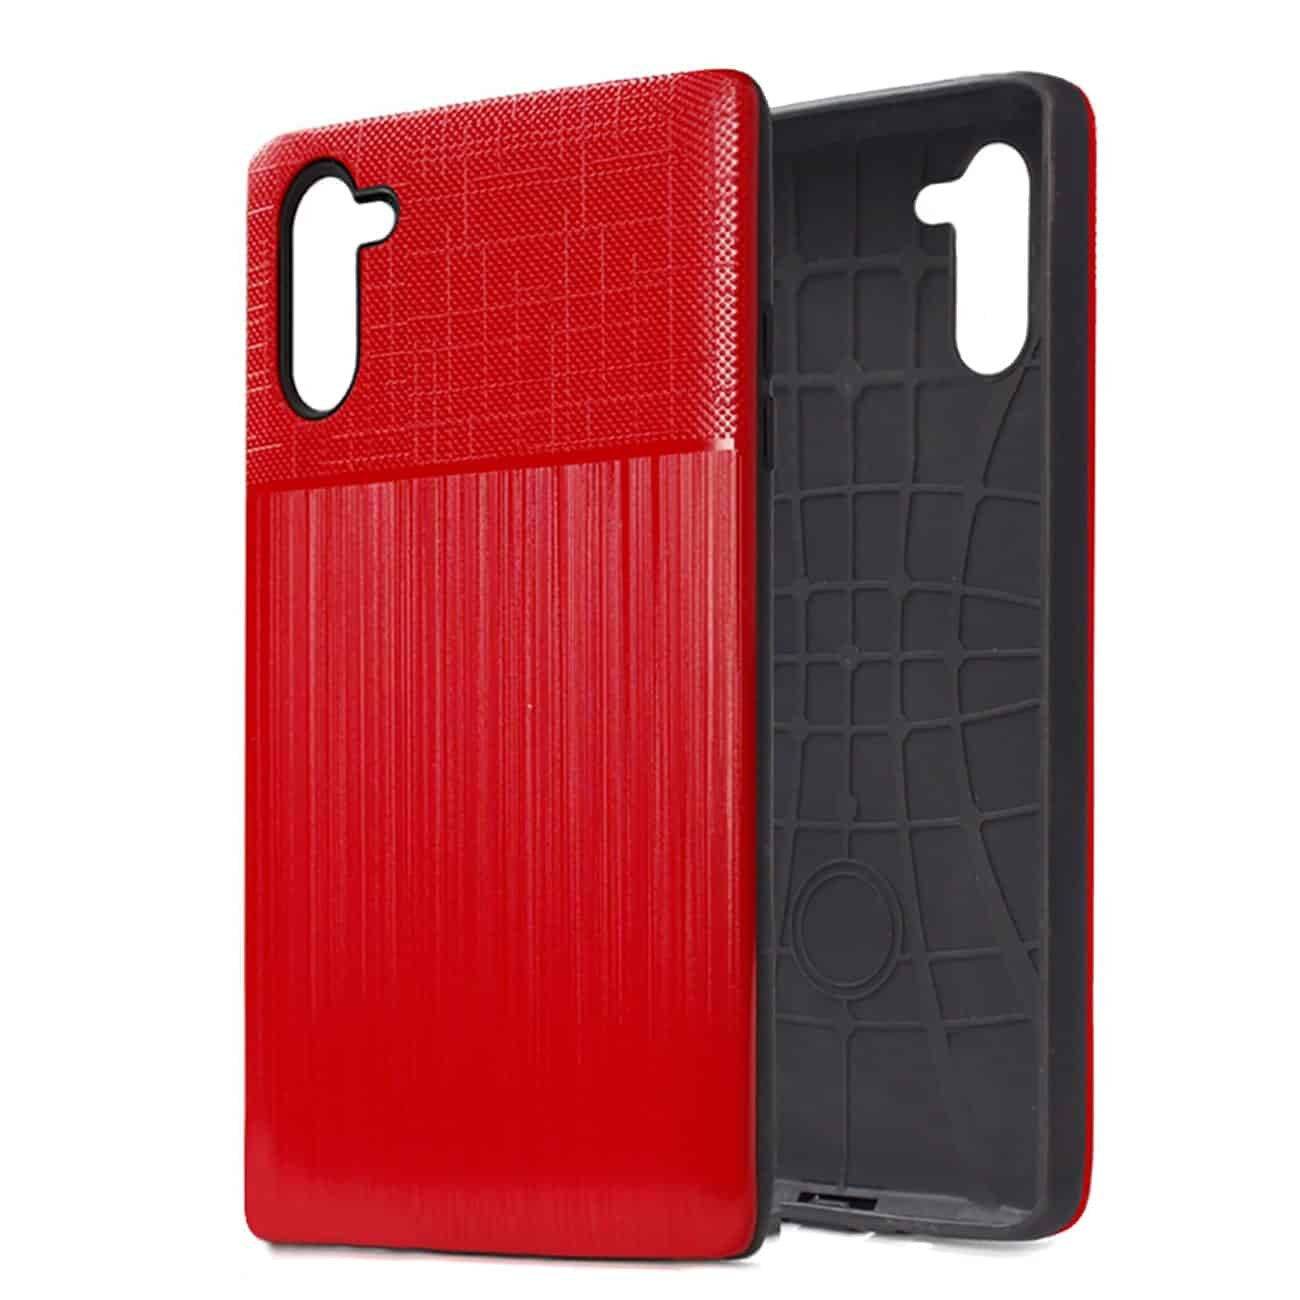 ISTIK SAMSUNG GALAXY NOTE 10 Lightweight Case In Red